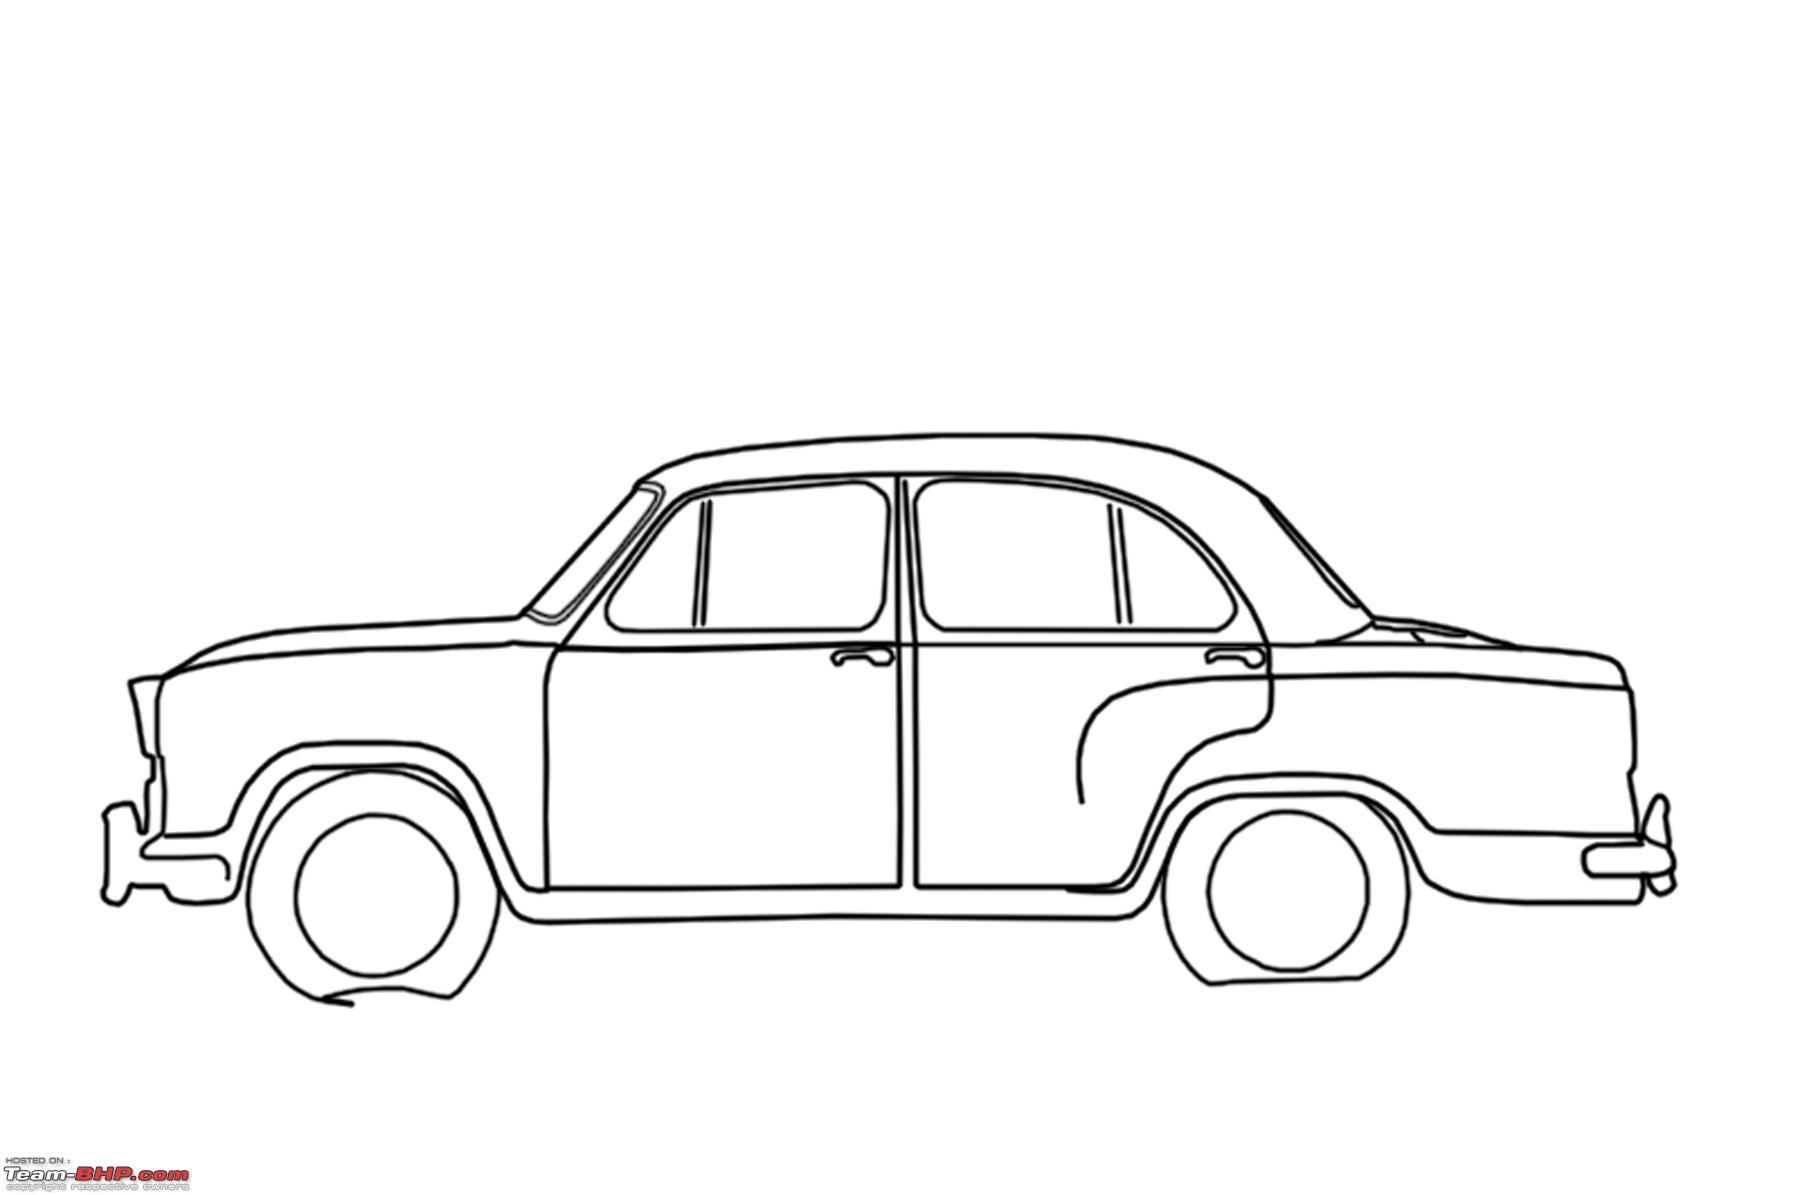 12 reasons why India's most favorite car is still the